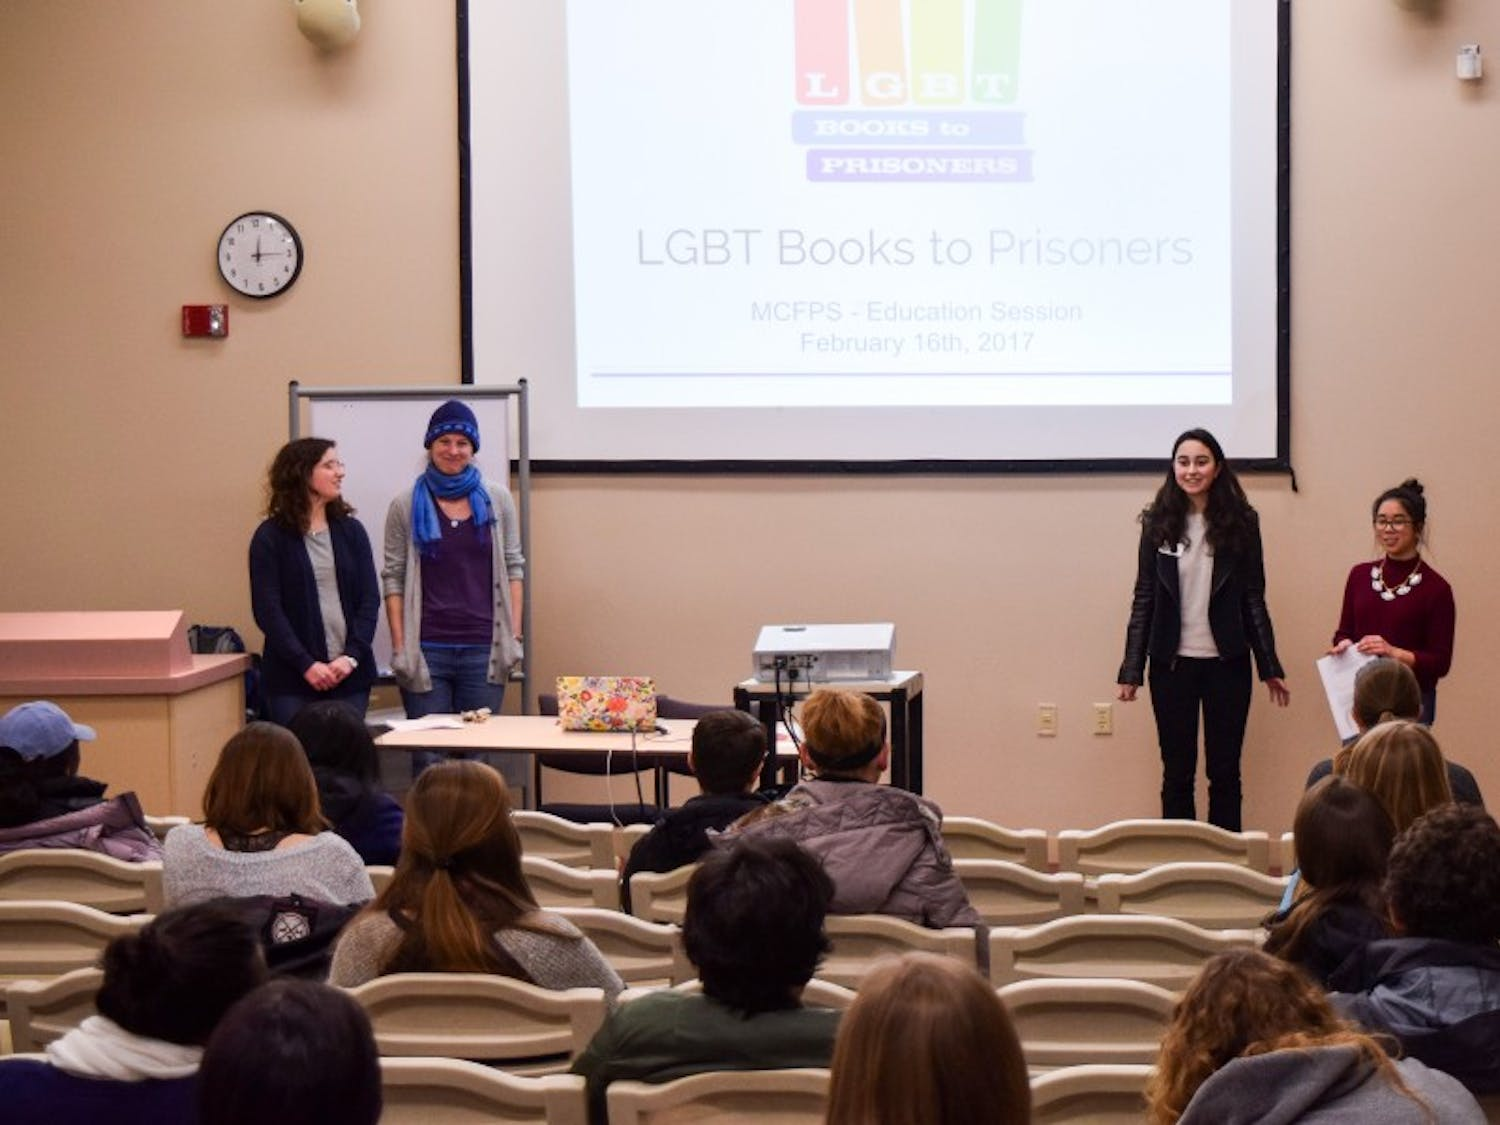 Badger Volunteer hosted a presentation of LGBT Books to Prisons Thursday, which donates educational books to LGBT individuals in prison systems.